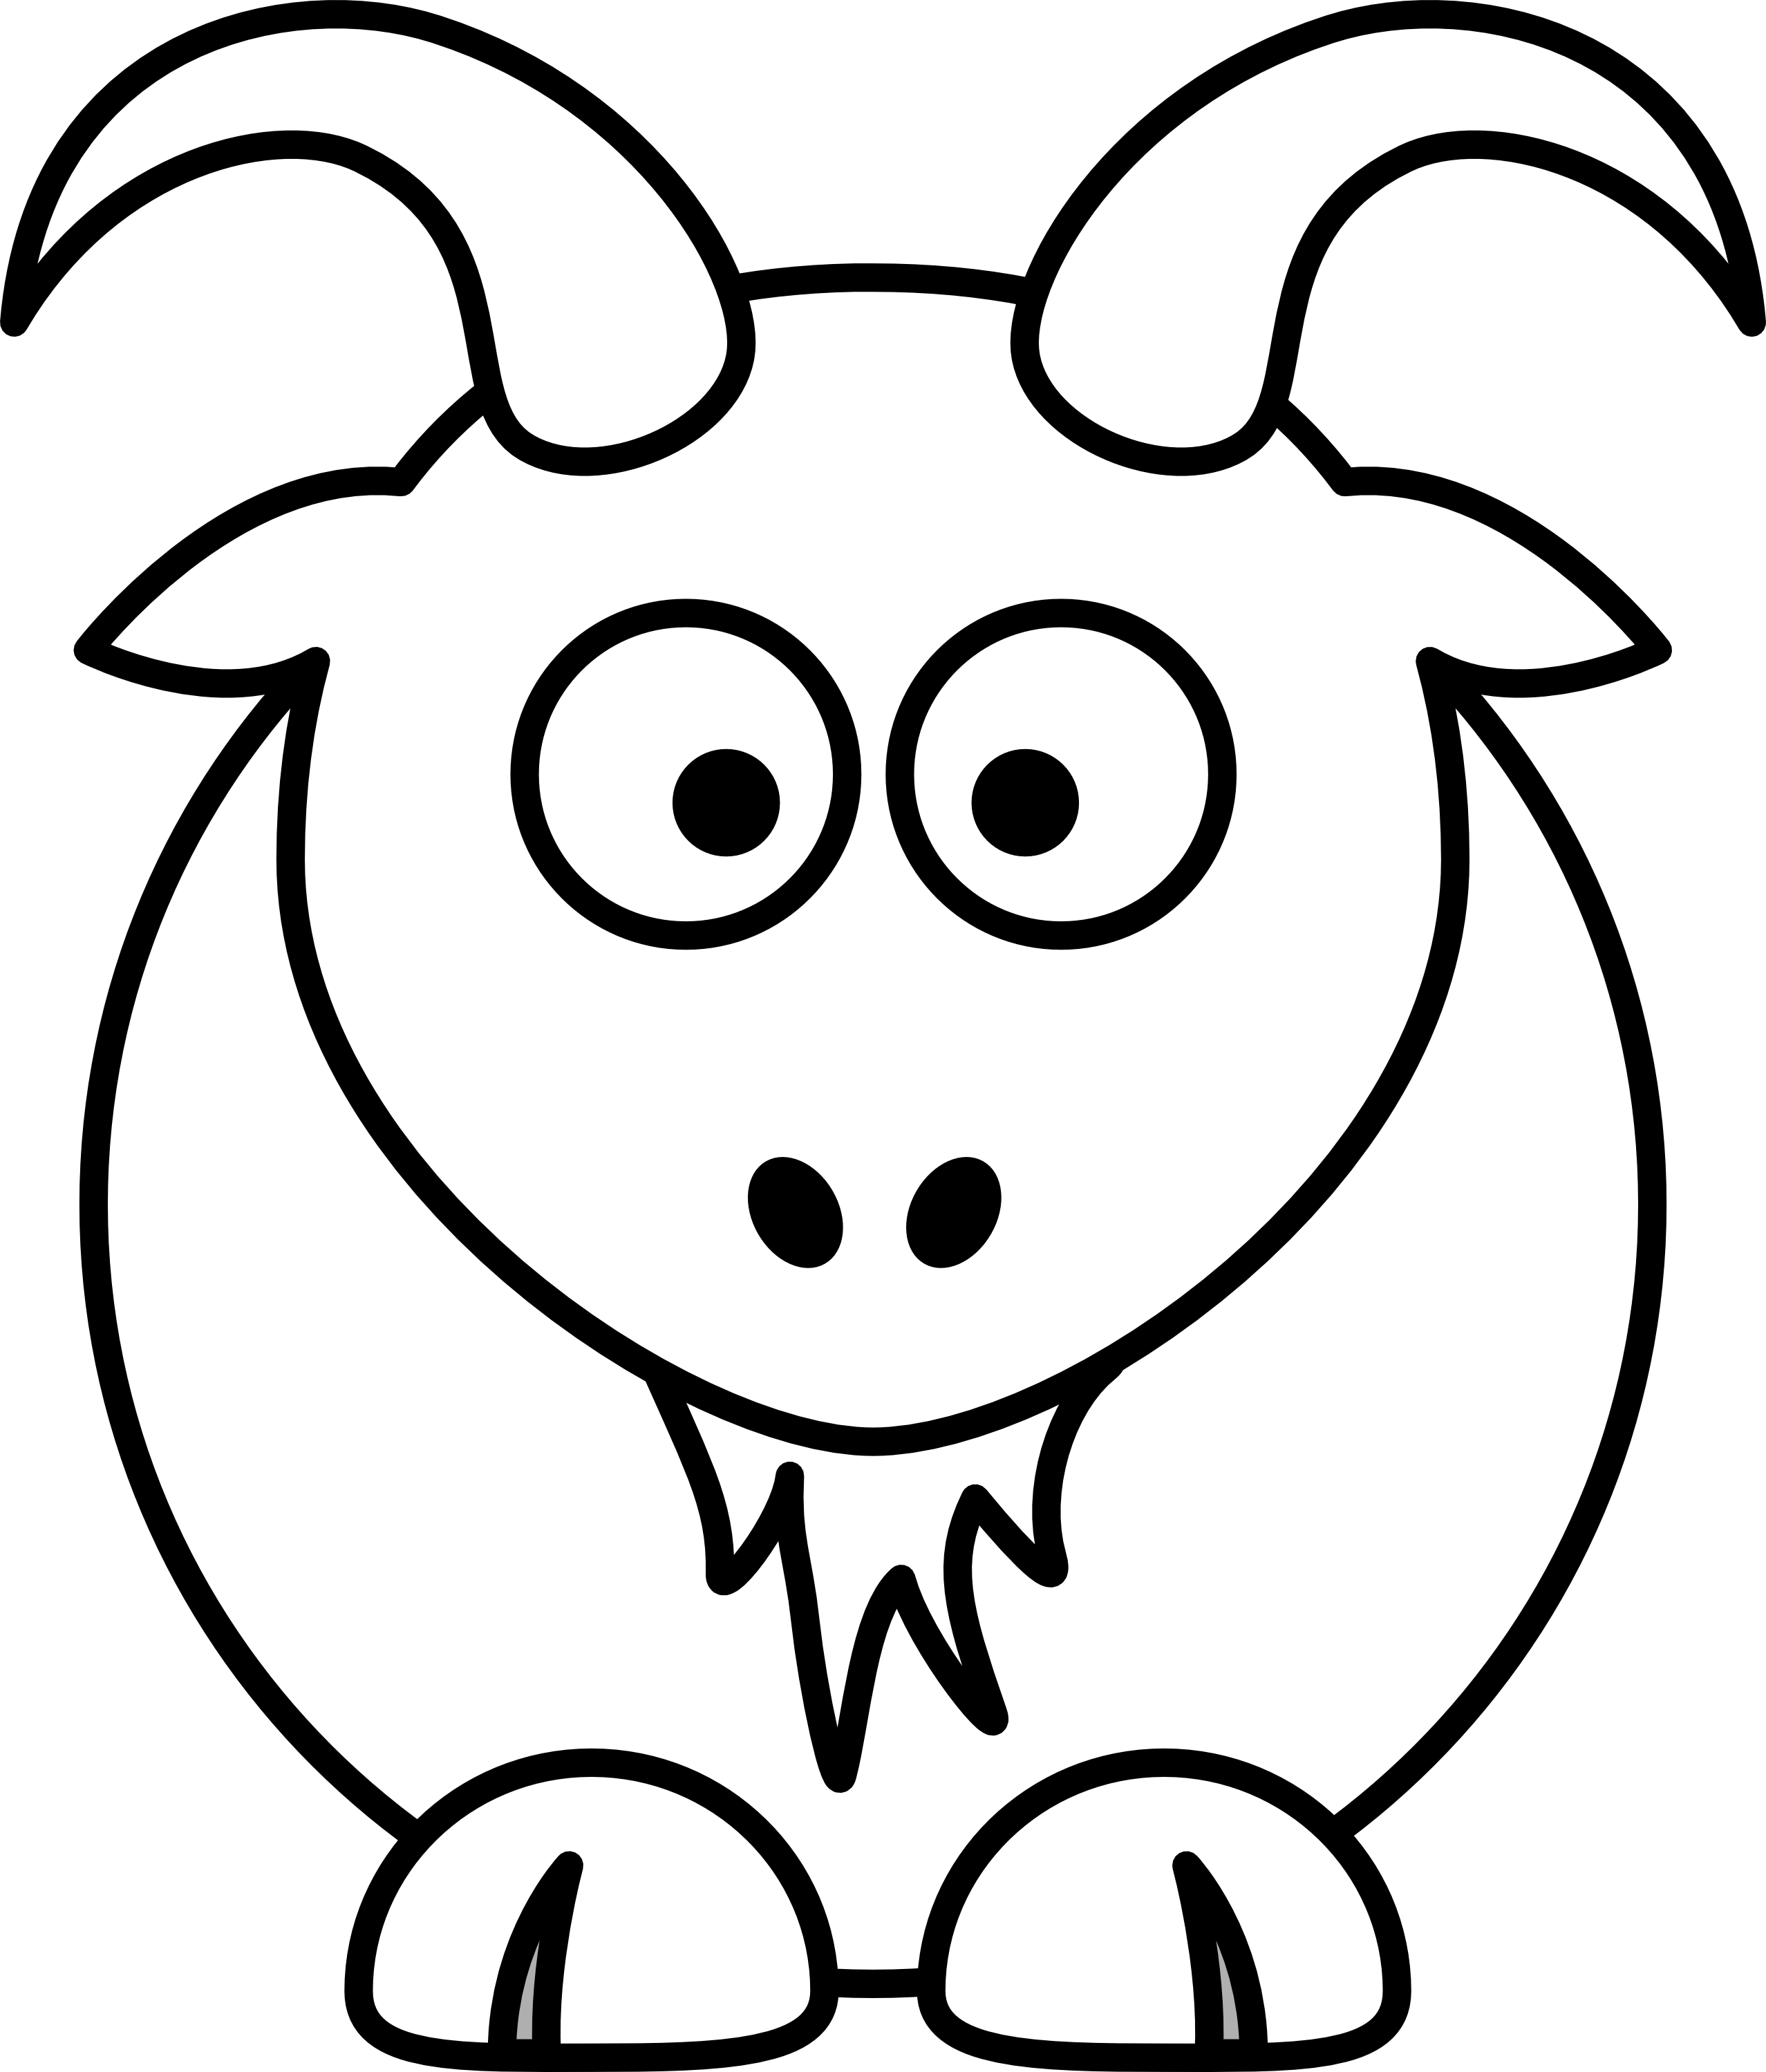 graphic library library Number panda free images. Family black and white clipart